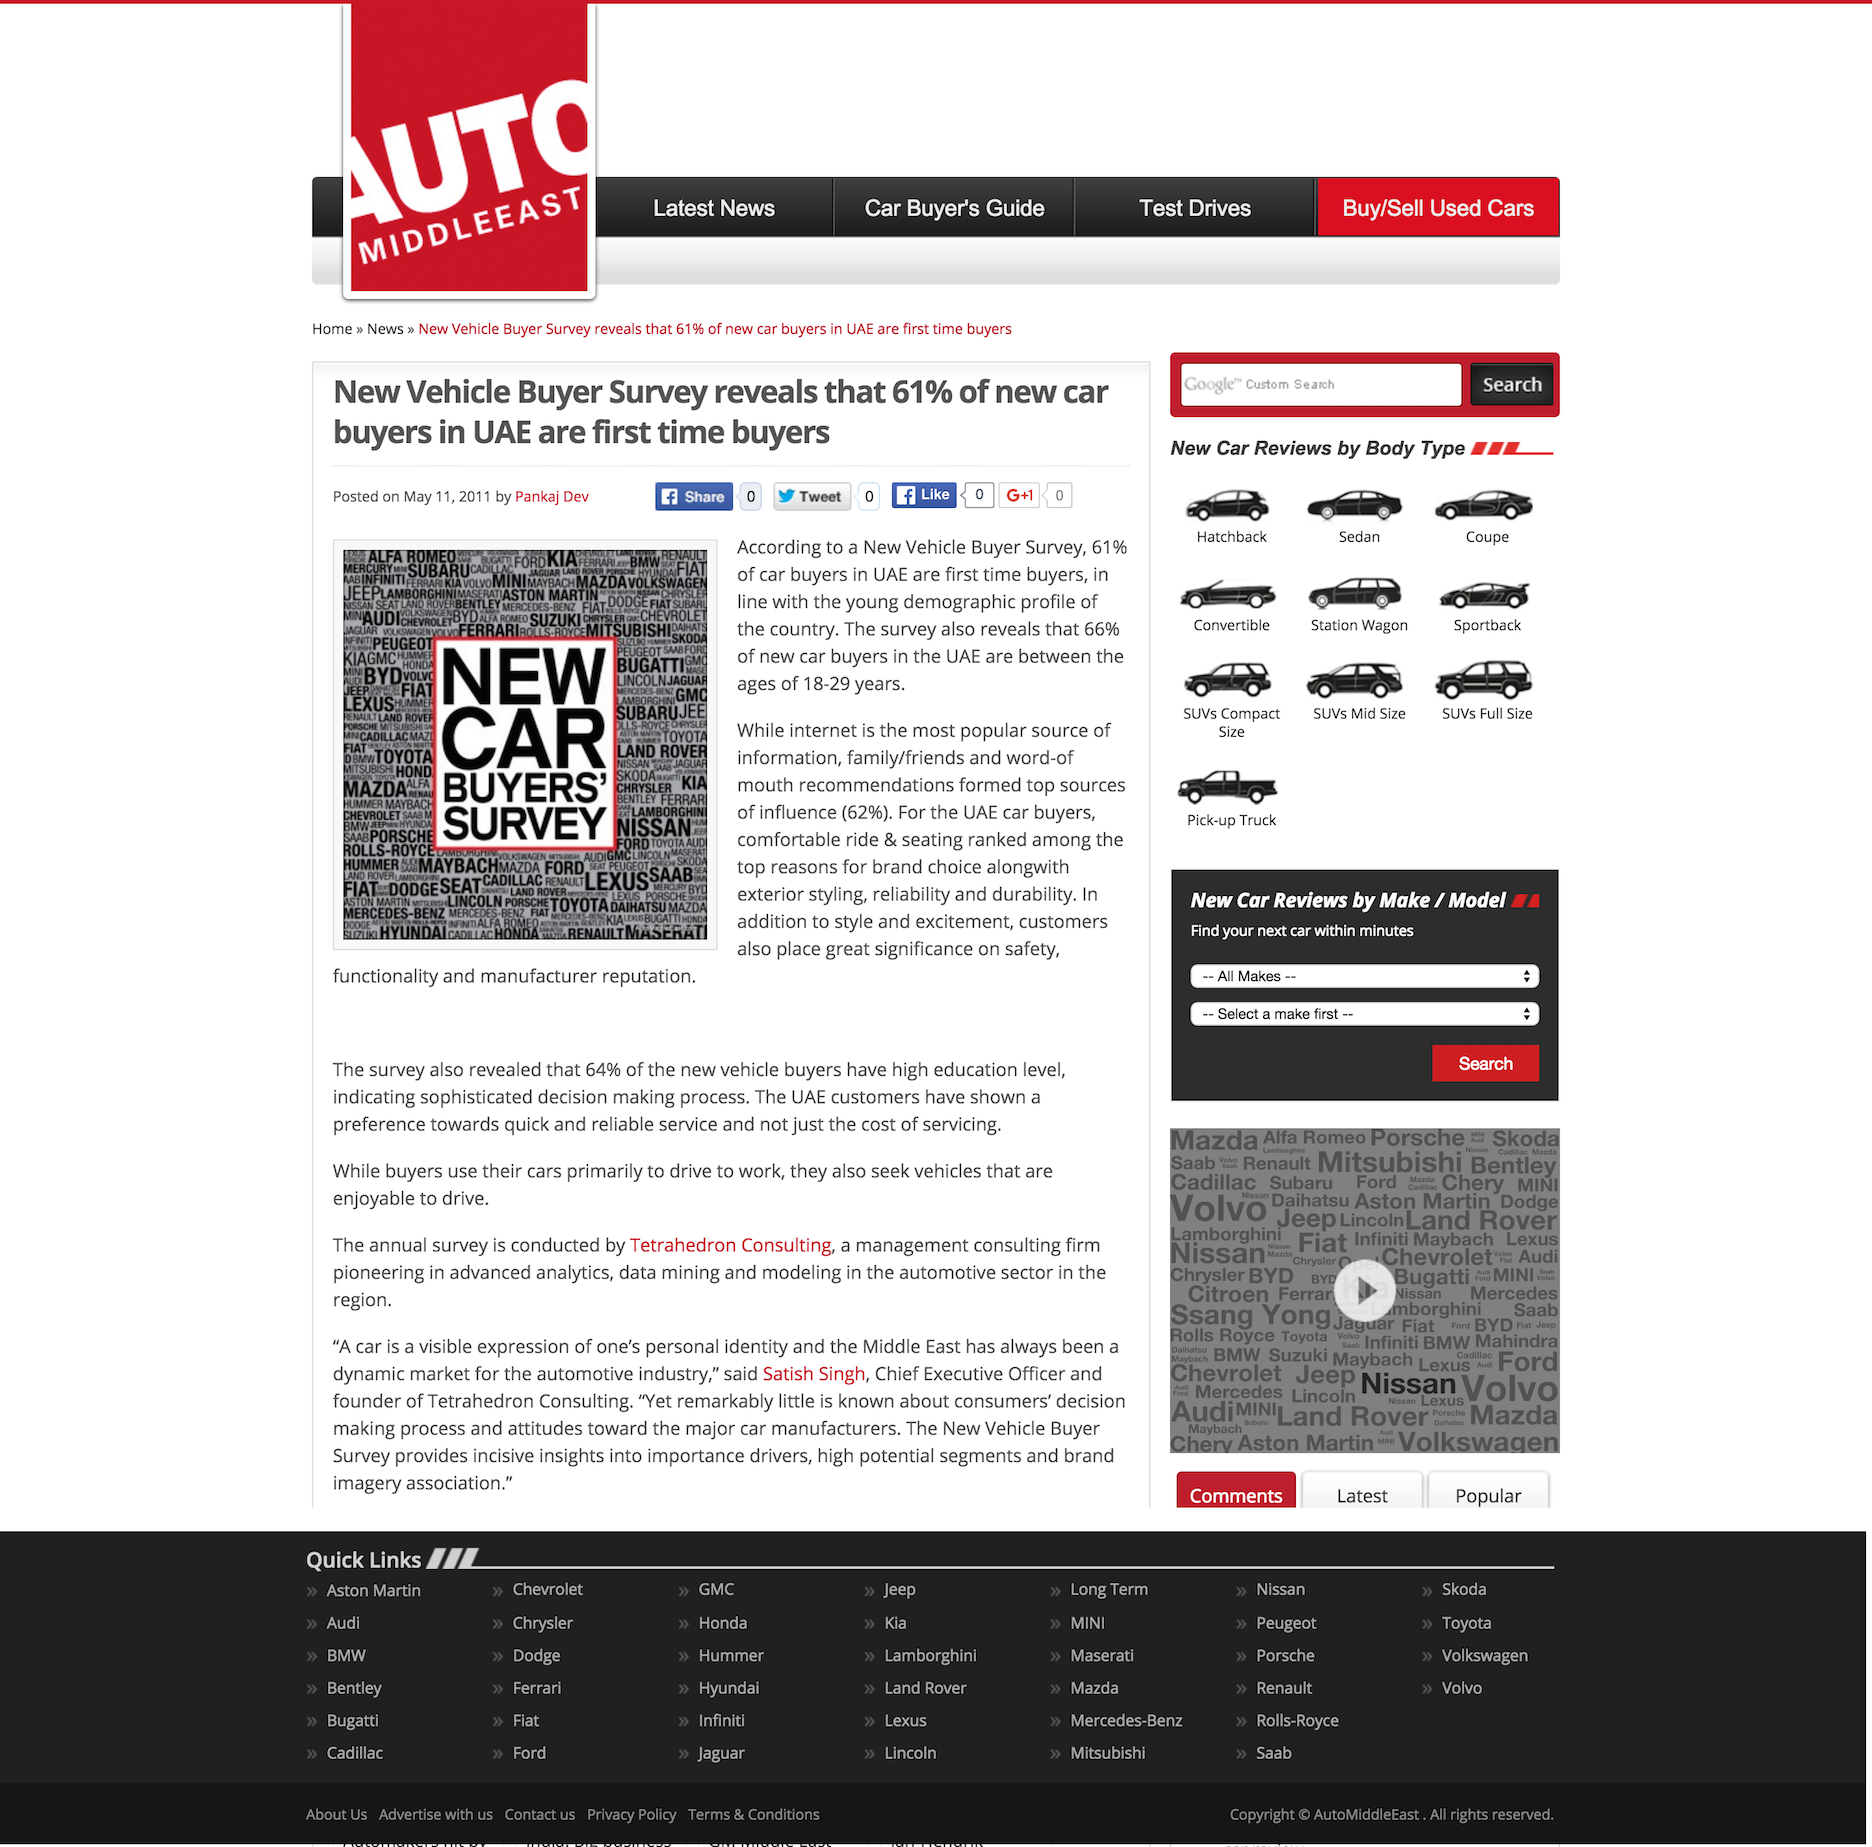 automiddleeast-com-2011-05-11-news